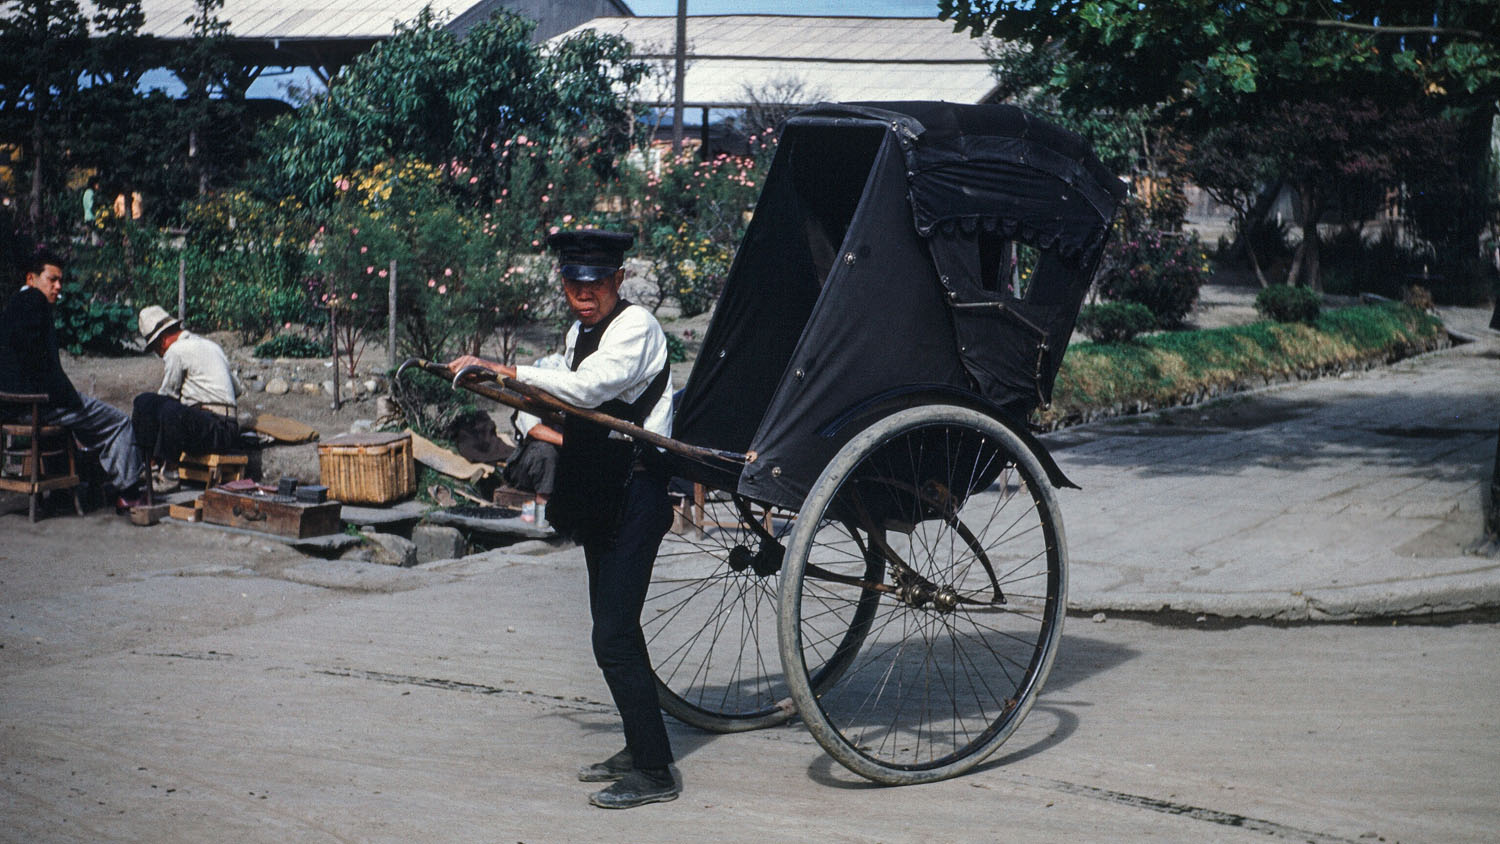 387-Man with Pedicab